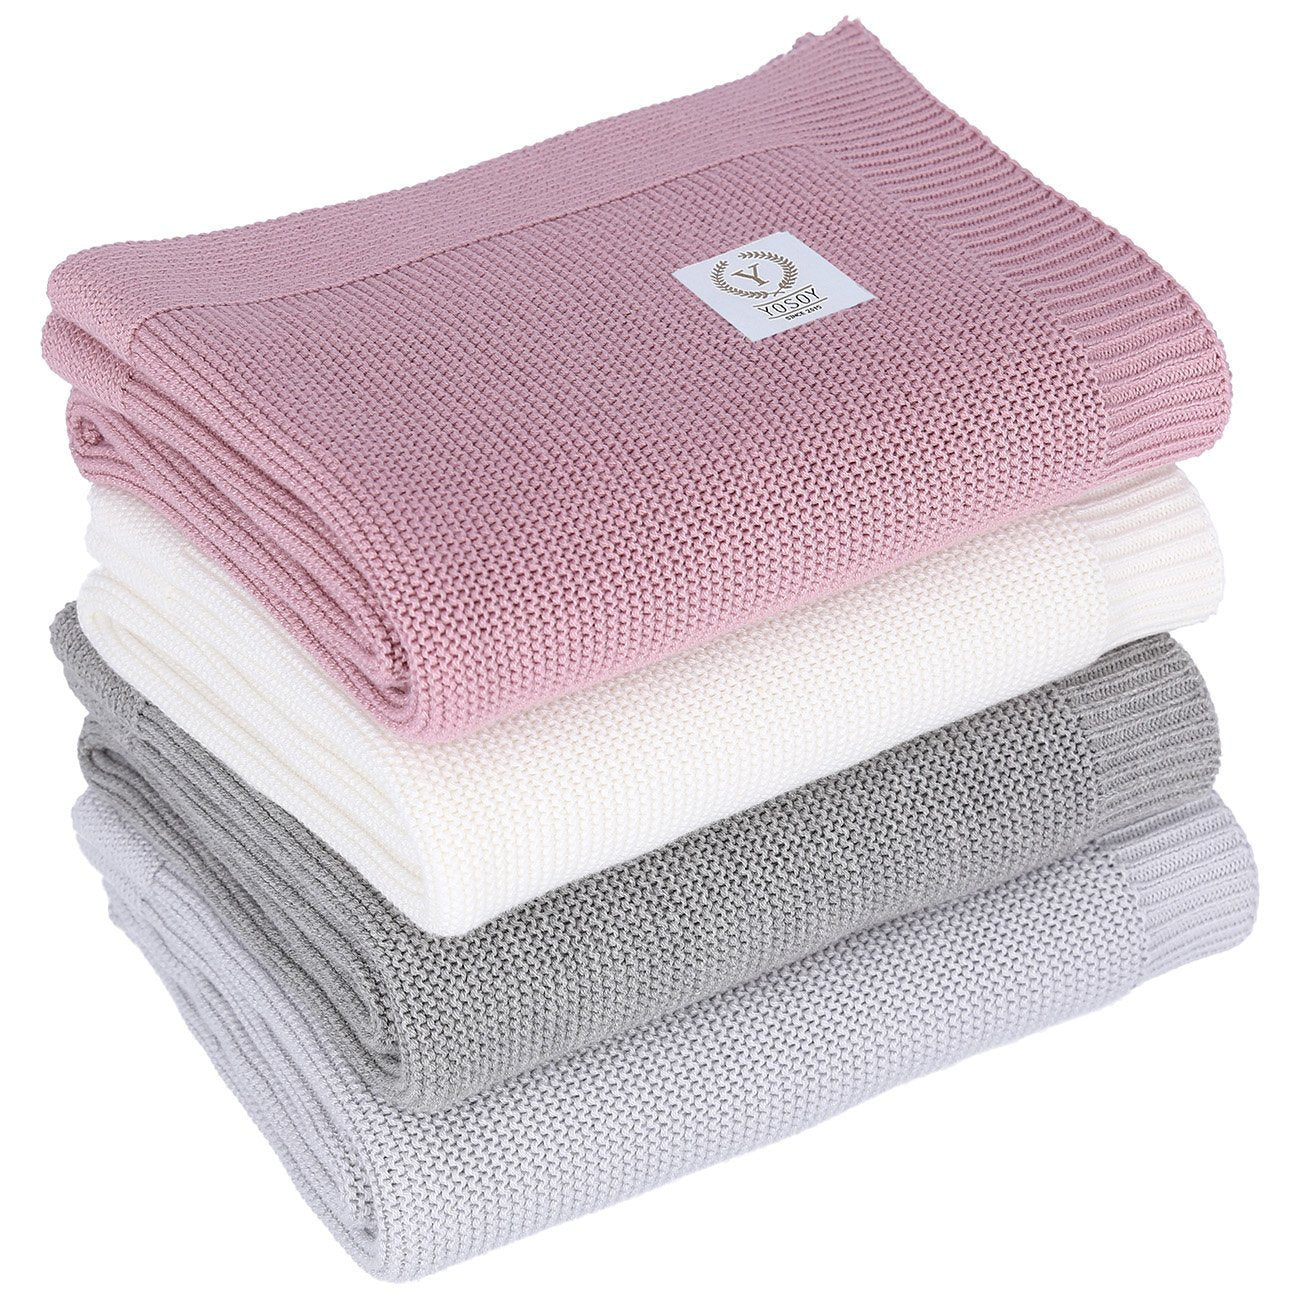 Cotton Blanket Light Grey - MyLullaby